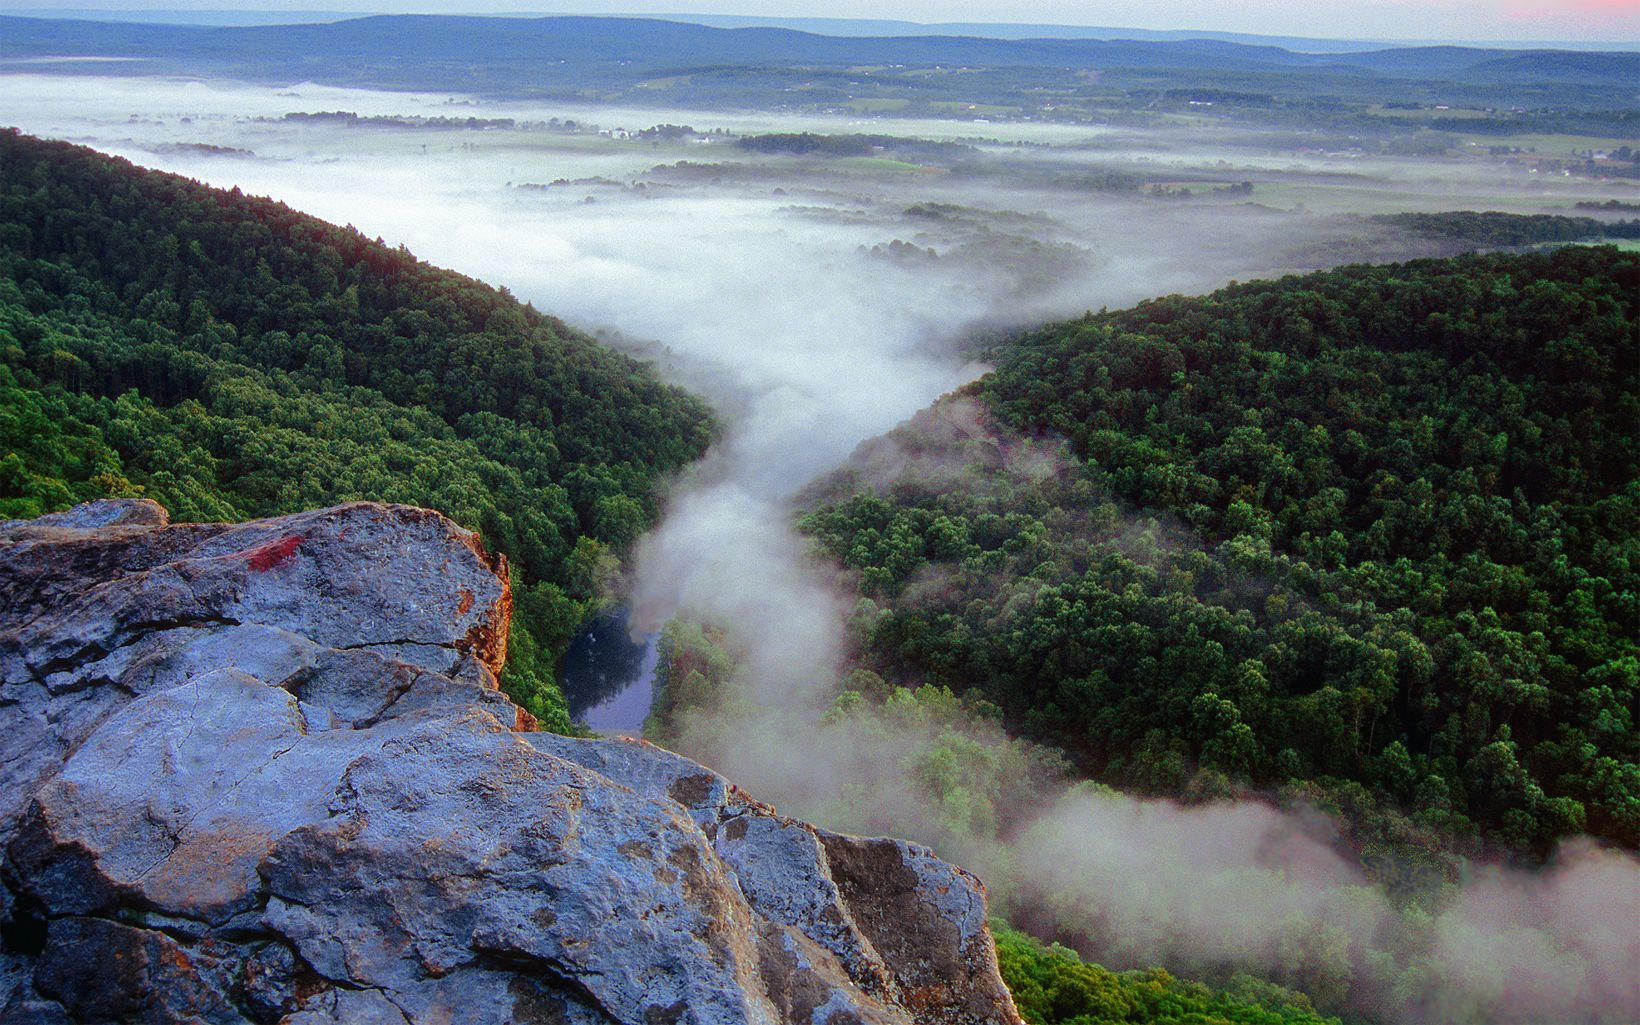 A mist rolls across the Susquehanna River.